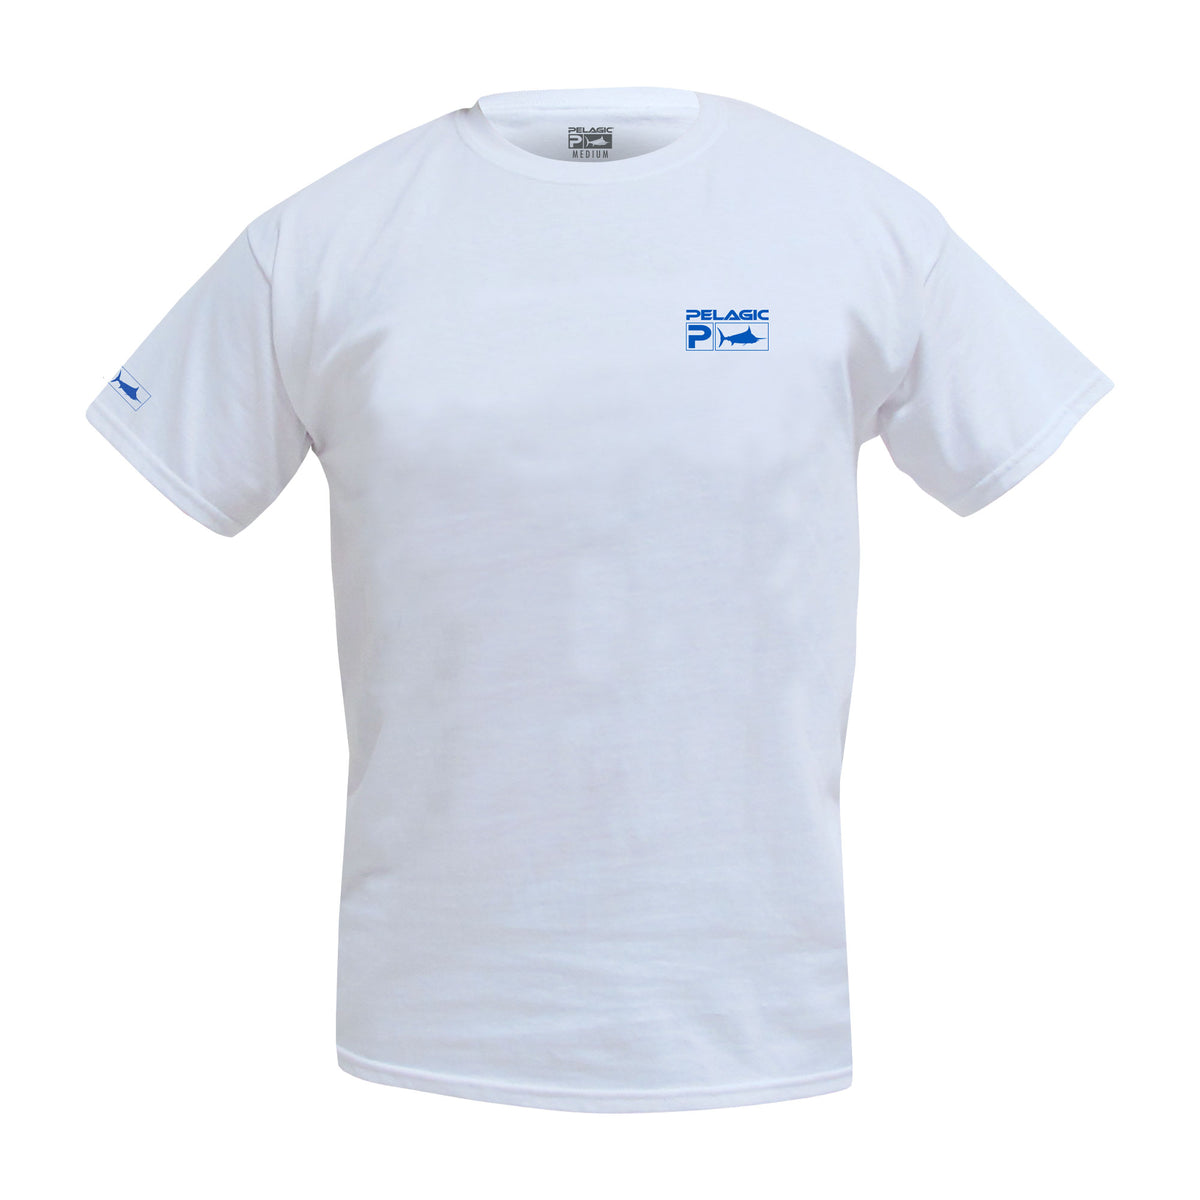 Long Range T-shirt Big Image - 2